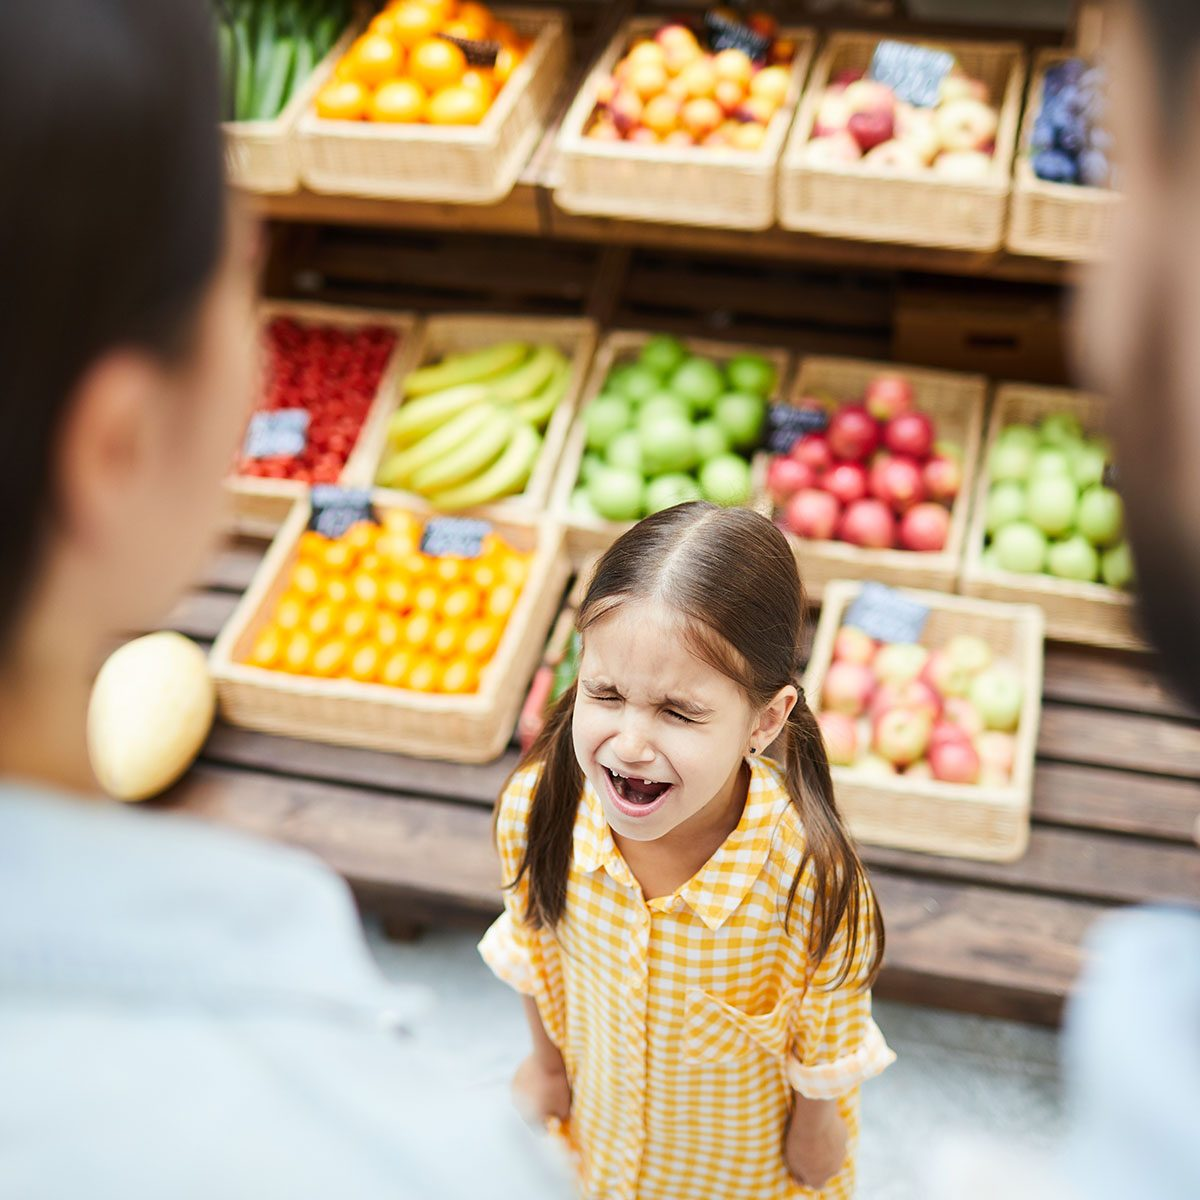 Upset hysterical girl with closed eyes crying loudly while manipulating parents and standing against food stall in supermarket; Shutterstock ID 1220942938; Job (TFH, TOH, RD, BNB, CWM, CM): TOH